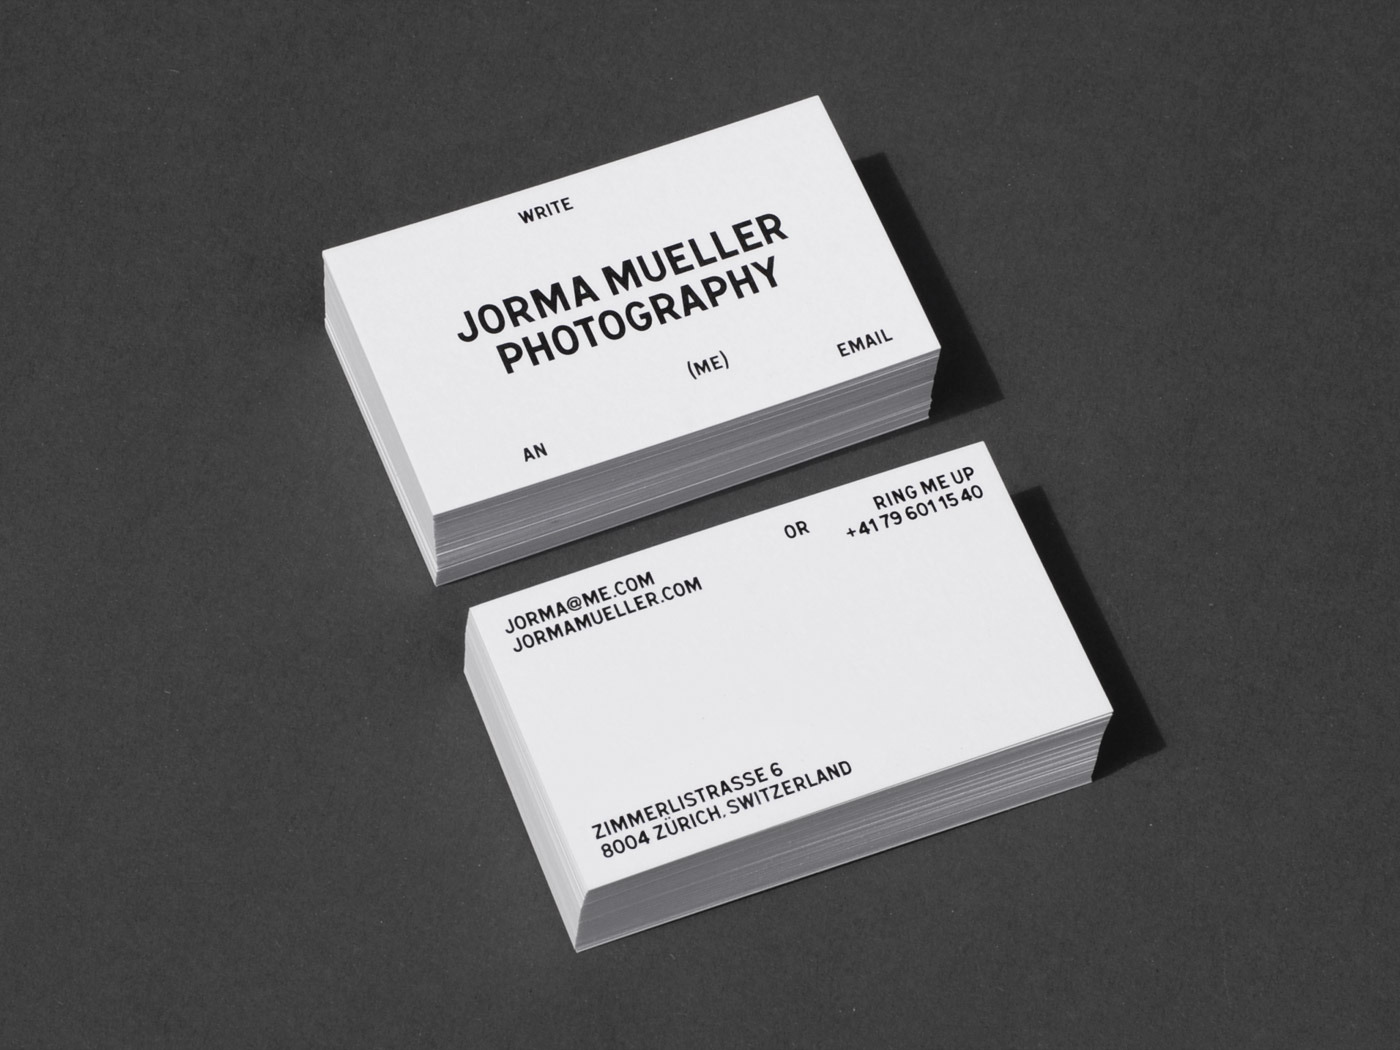 Bureau Collective – Jorma Mueller Photography